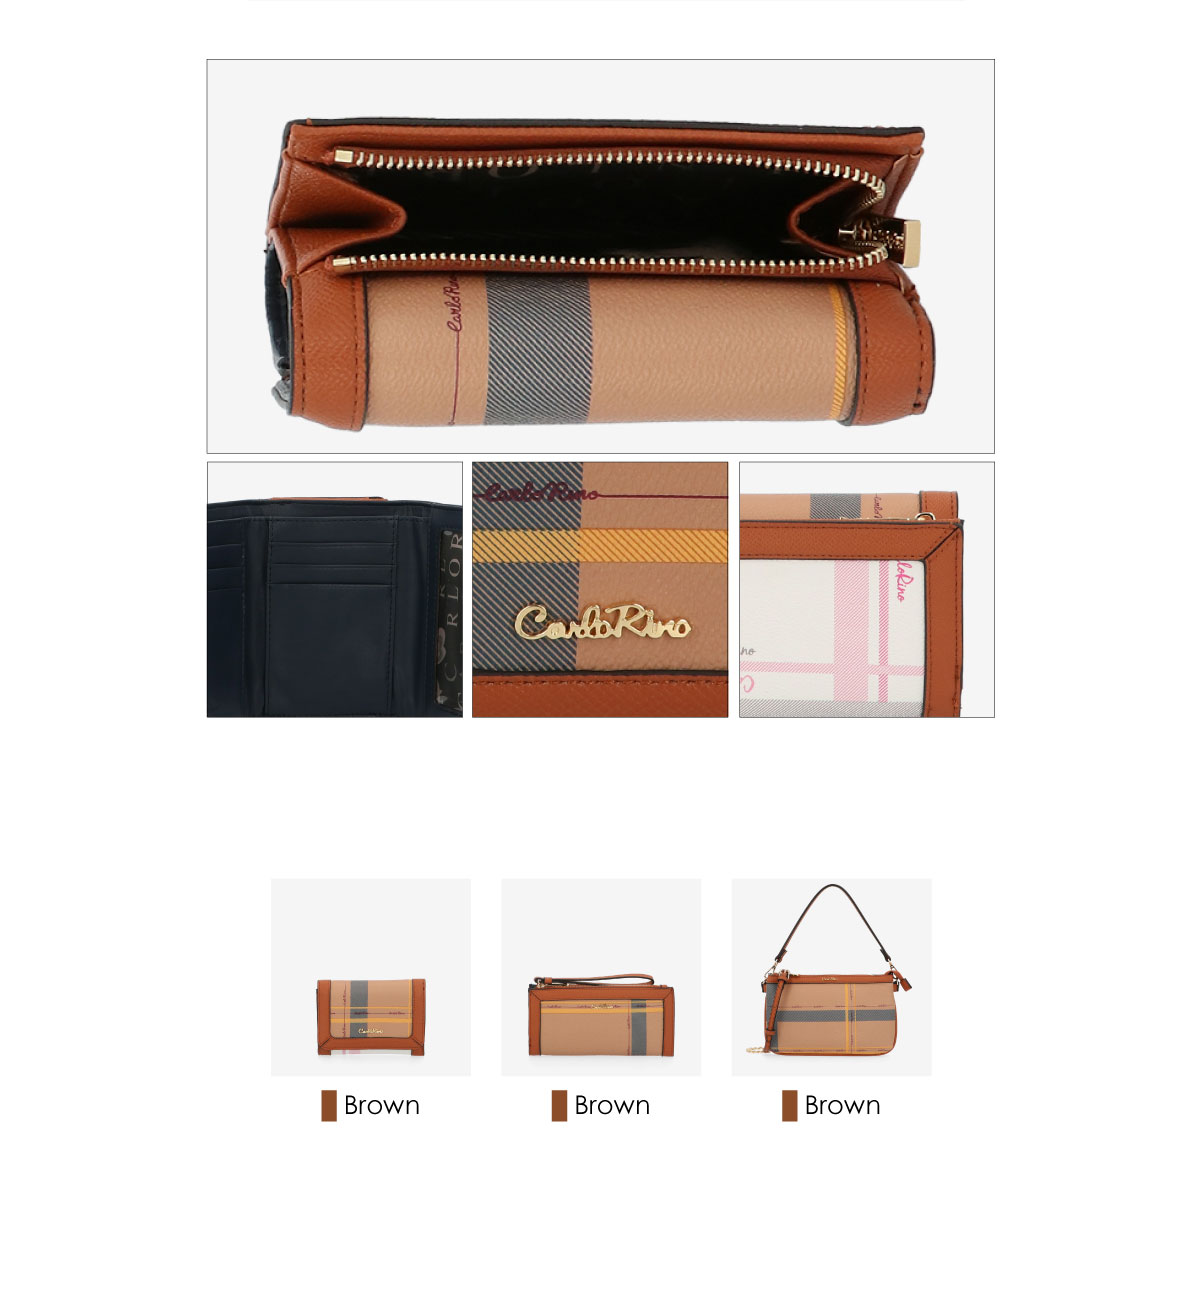 0305062J 501 05 3 - Mix of Favourites 2-fold Short Wallet